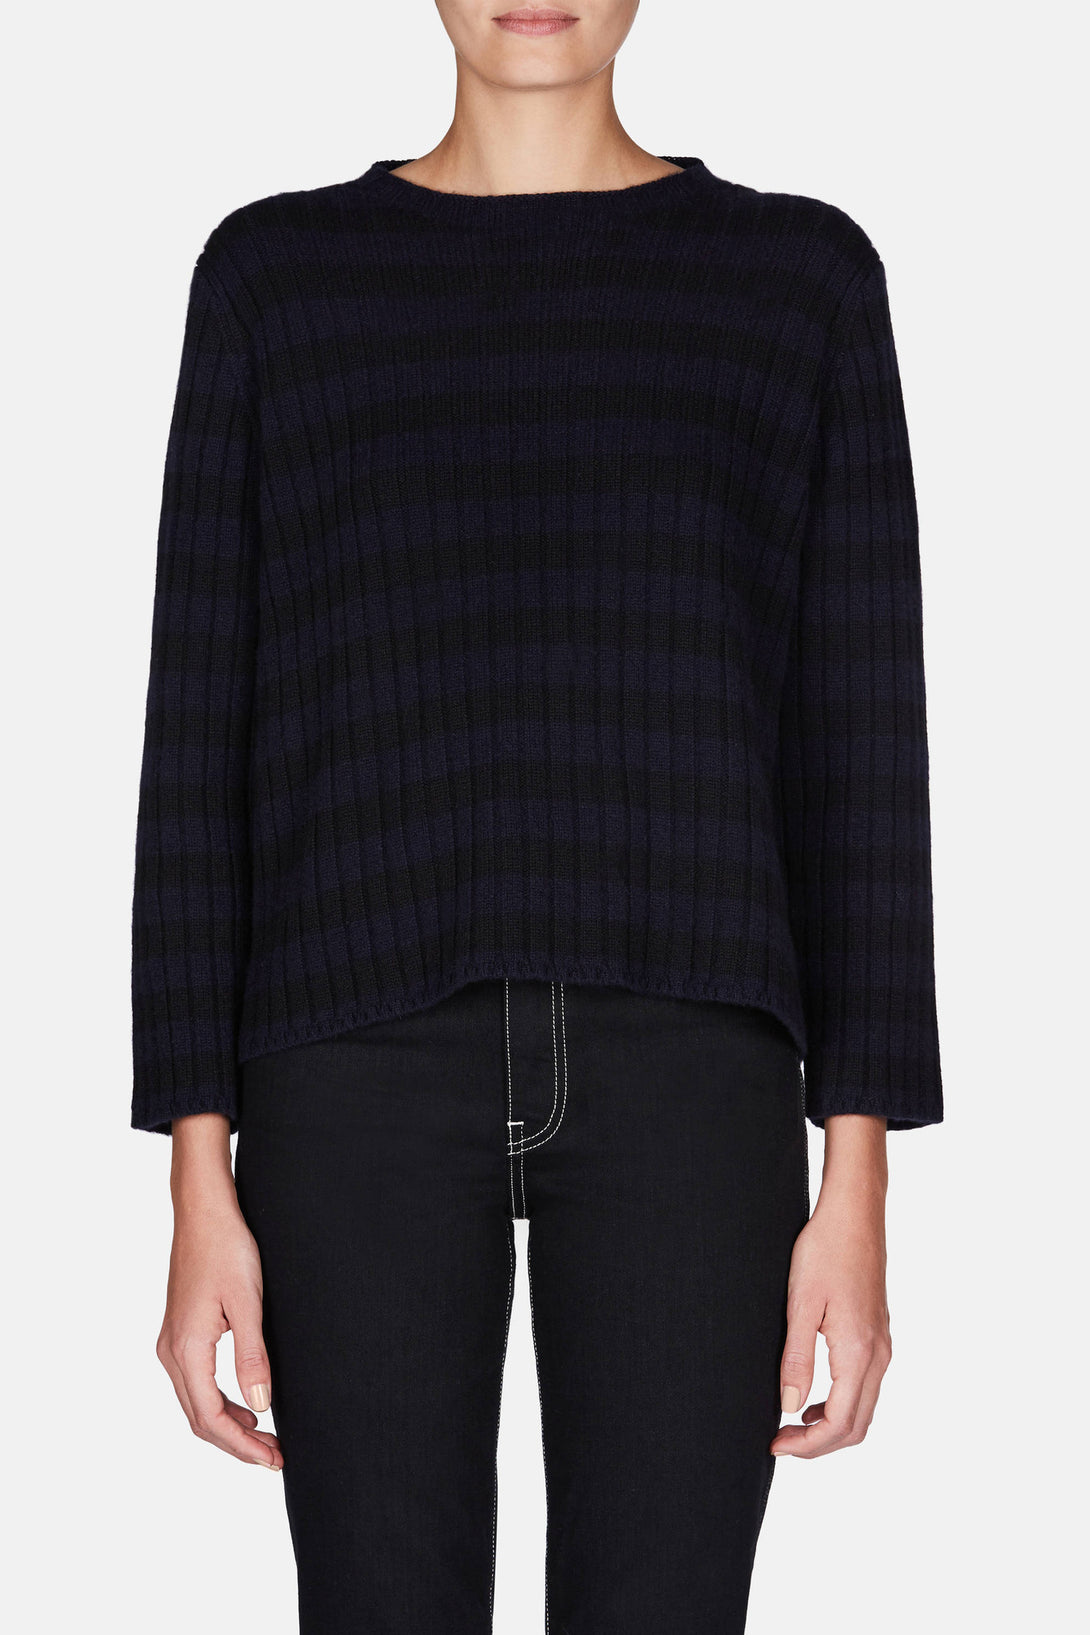 Arielle Sweater - Navy/Black